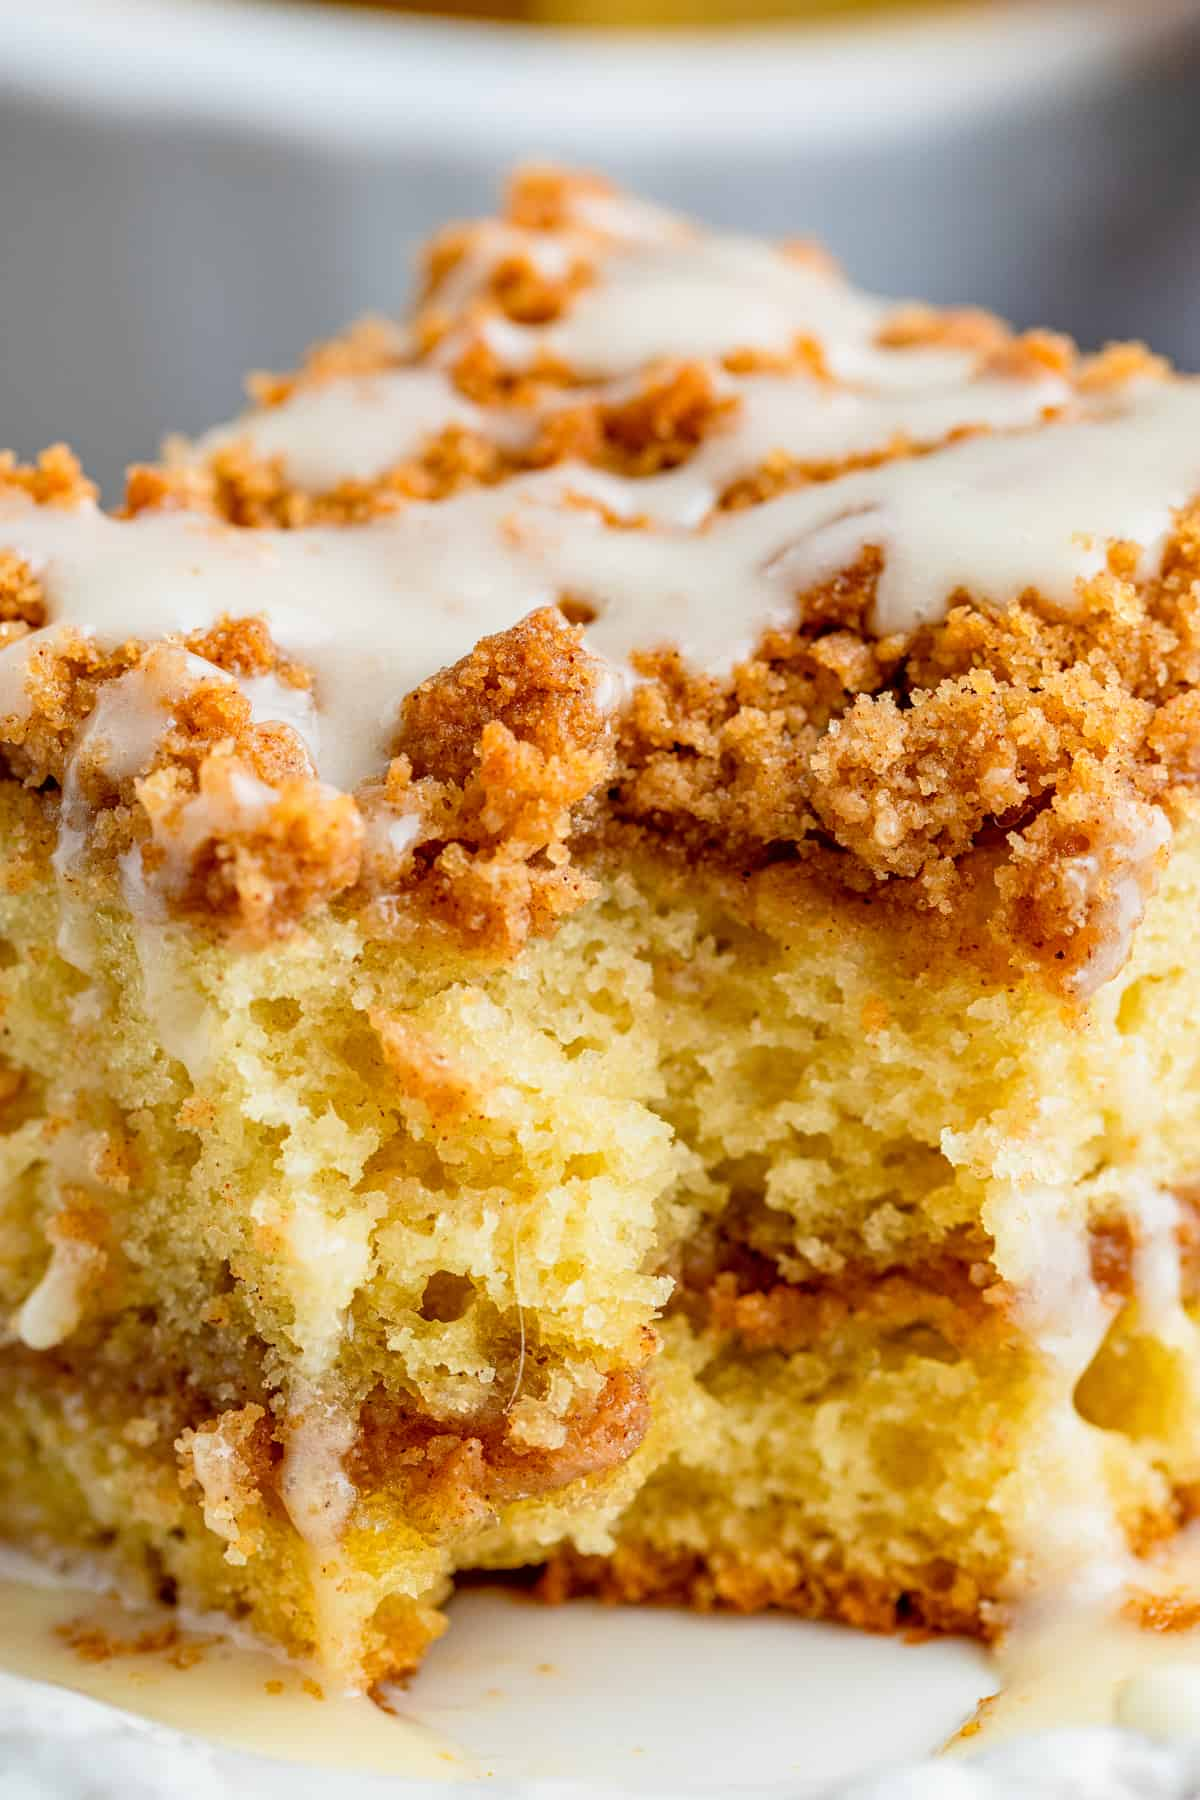 Close up of inside of Sour Cream Coffee Cake